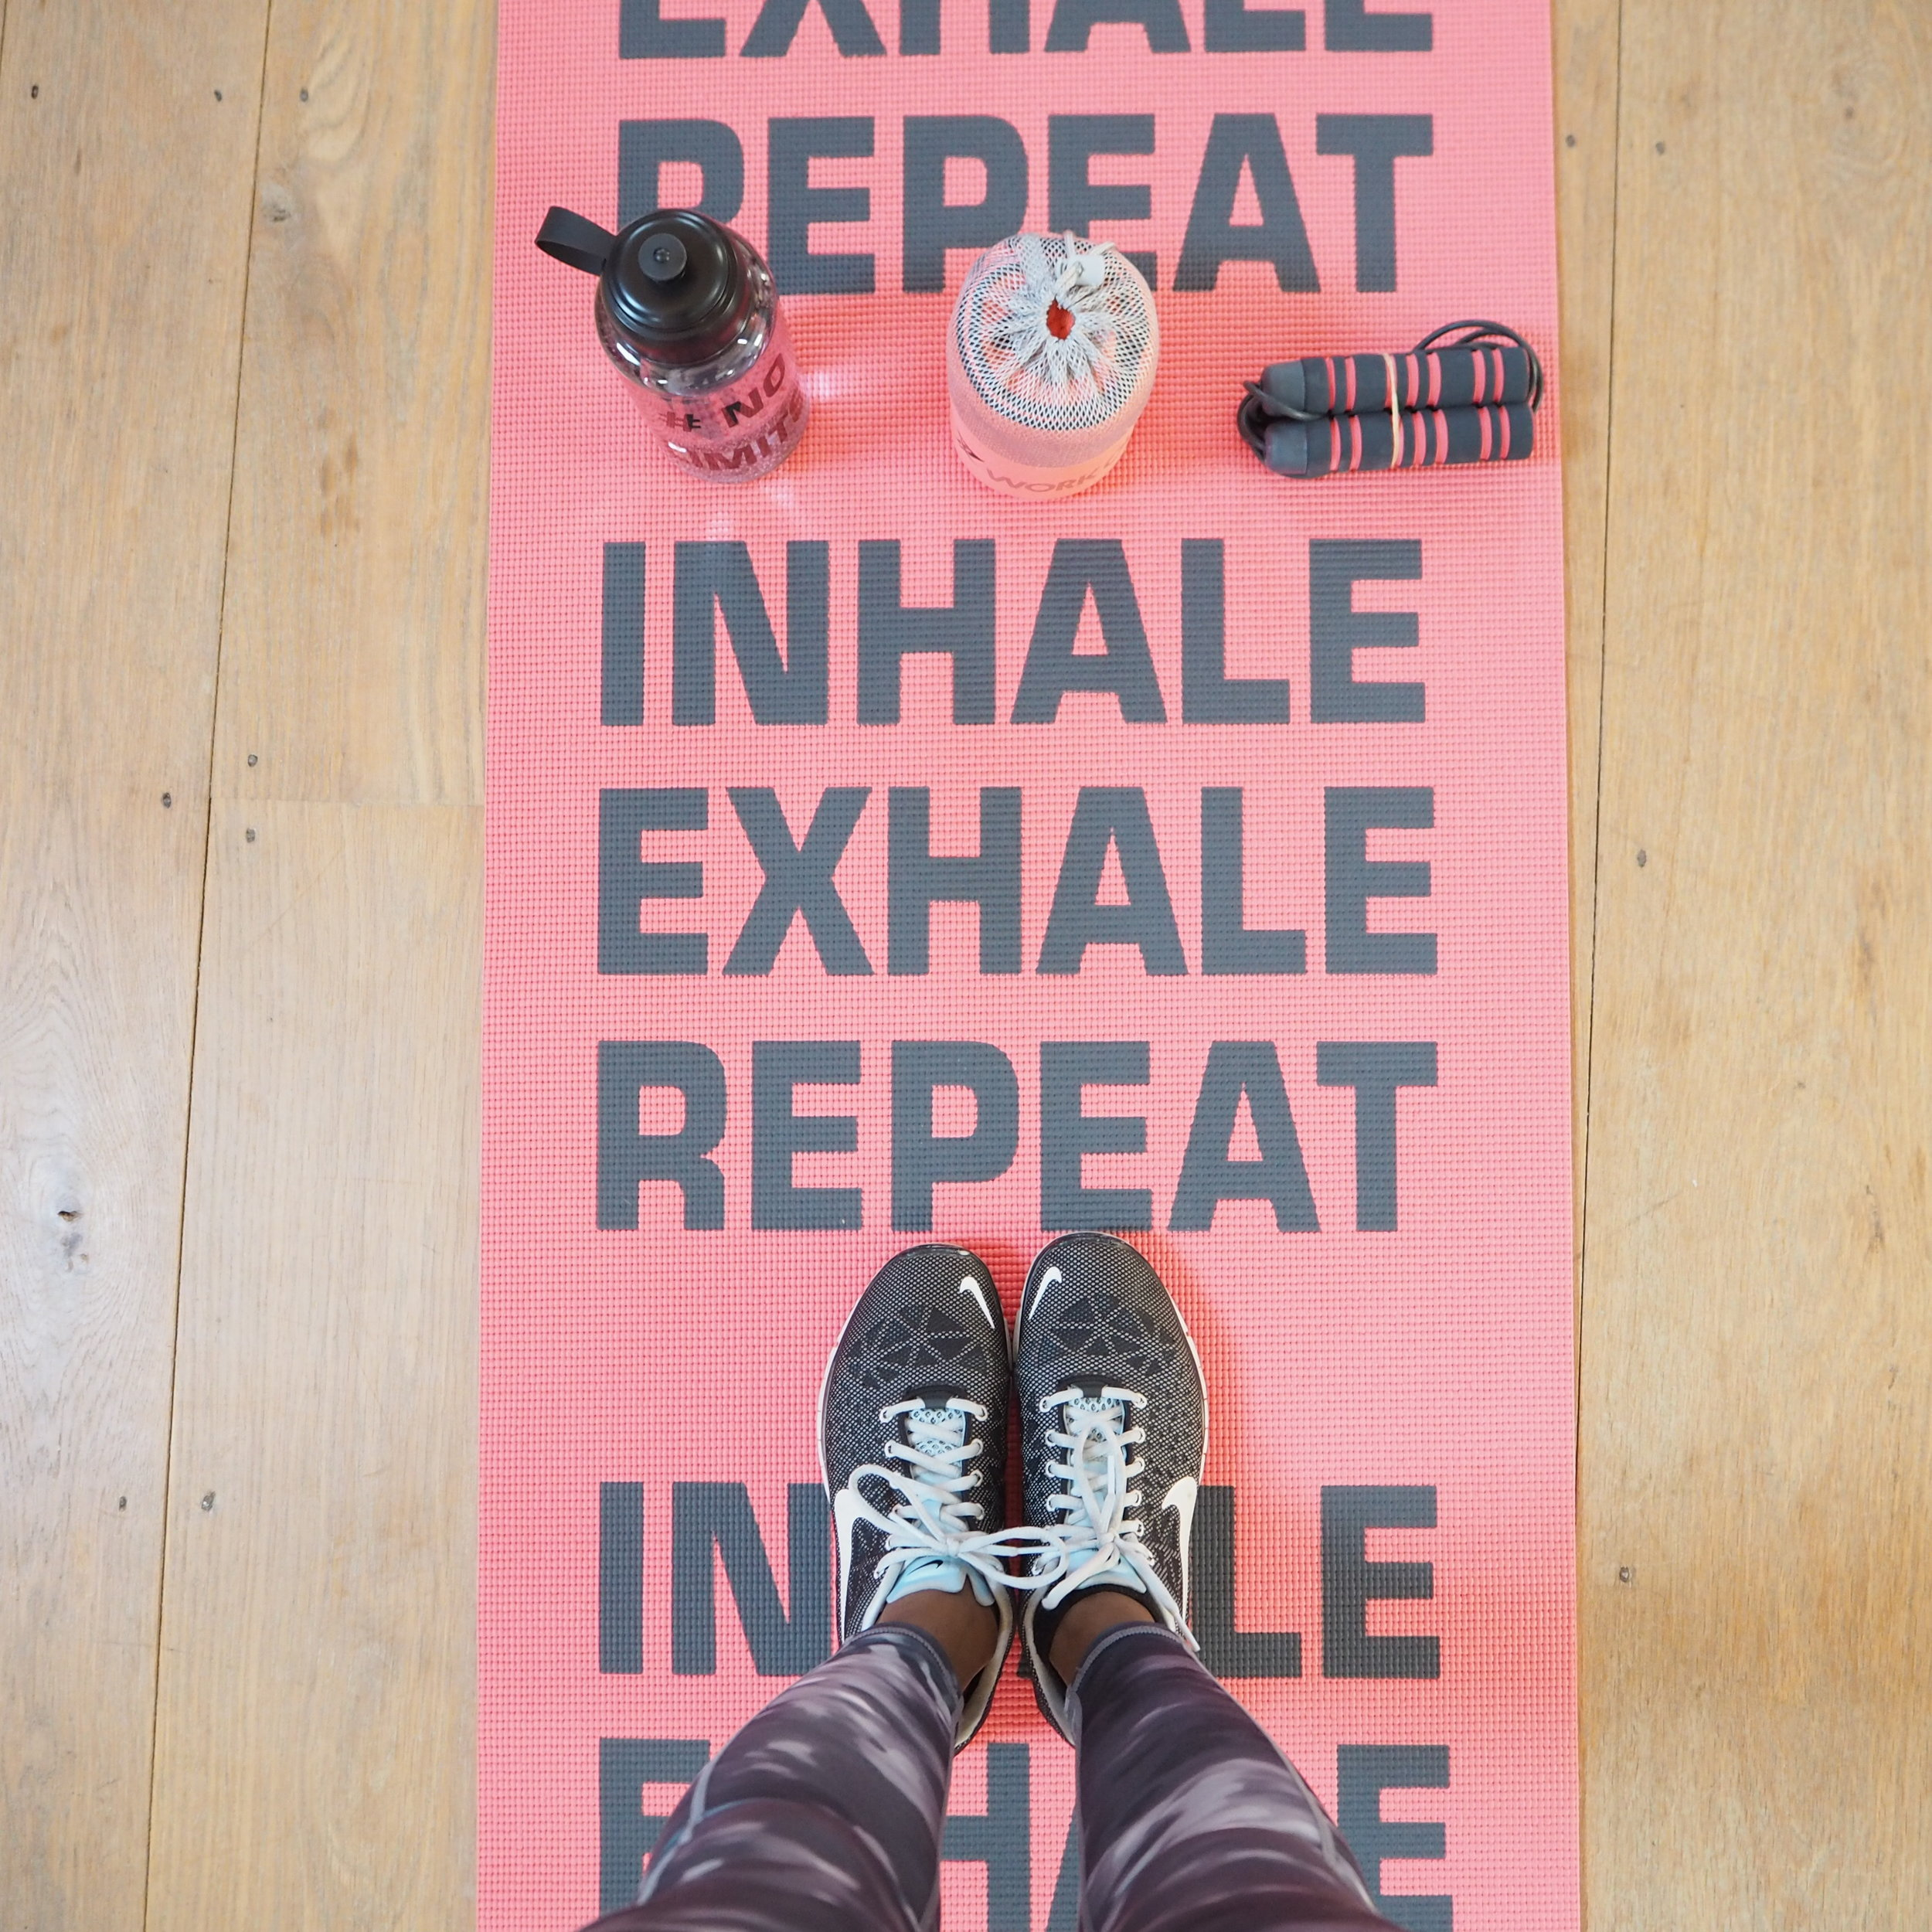 Motivation Monday Primark Yoga Mat